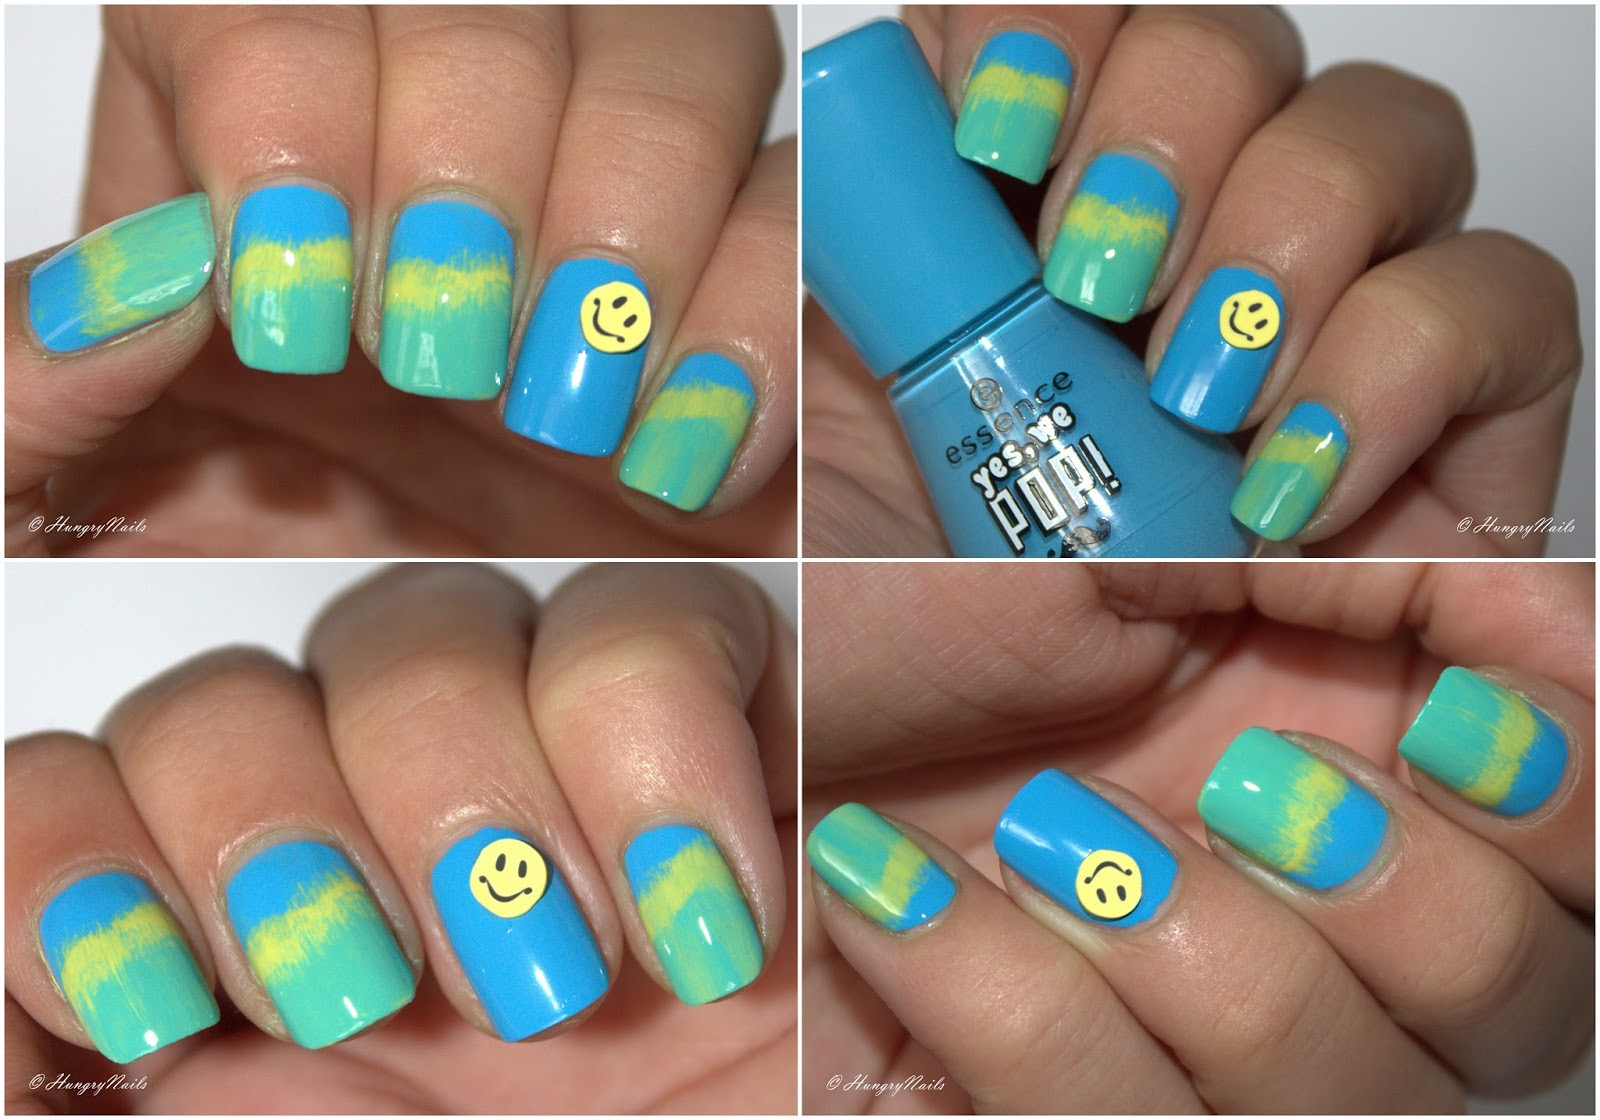 http://hungrynails.blogspot.de/2014/09/review-essence-yes-we-pop-trend-edition.html